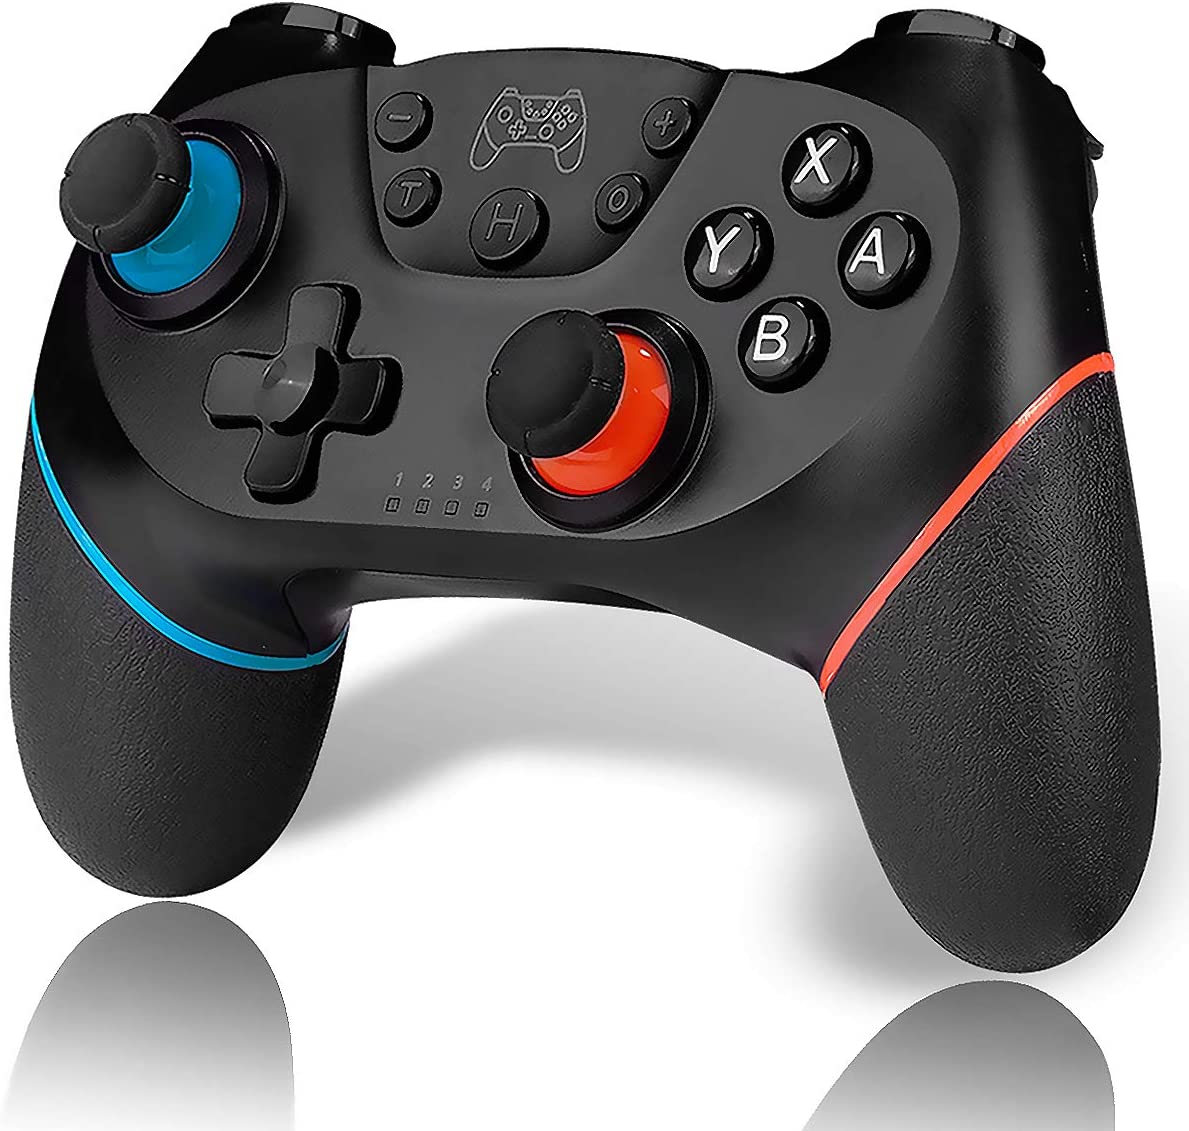 CLEVO Switch Controllers, Wireless Pro Controller for Nintendo Switch/ Nintendo Switch Lite - Gamepad Joypad Supports Gyro Axis, Turbo and Dual Vibration